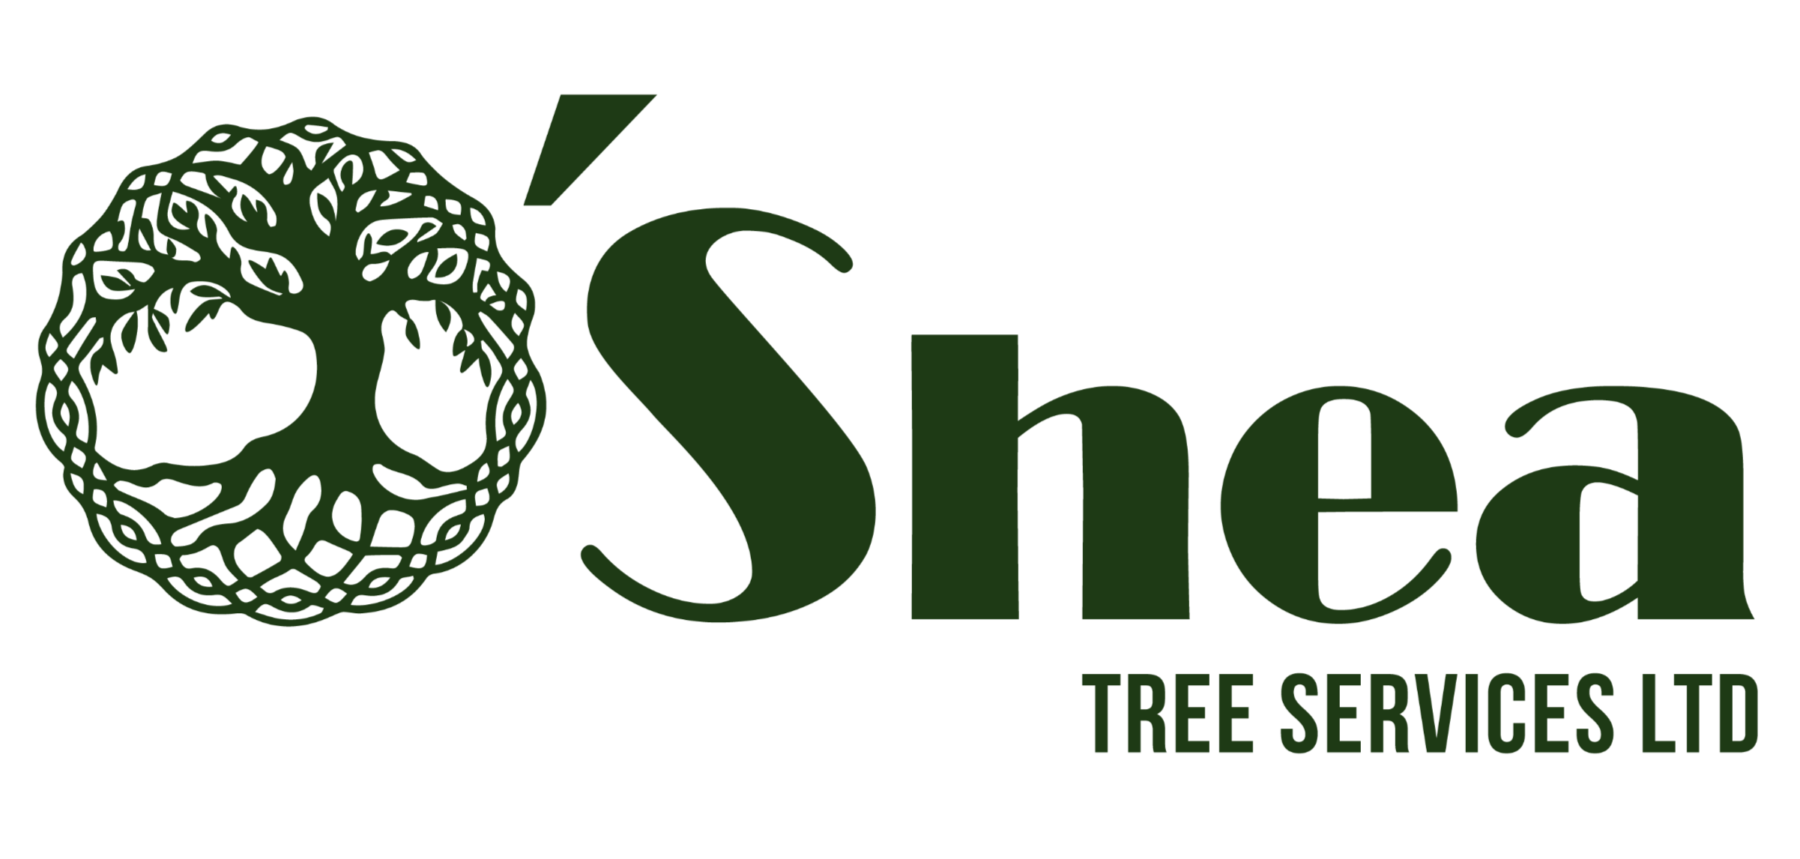 Bristol Marketing Company provided logo design, branding and graphic design for O'Shea Tree Services. Bristol Marketing Company also provided graphic design, website design, website development, professional photography and business card design.